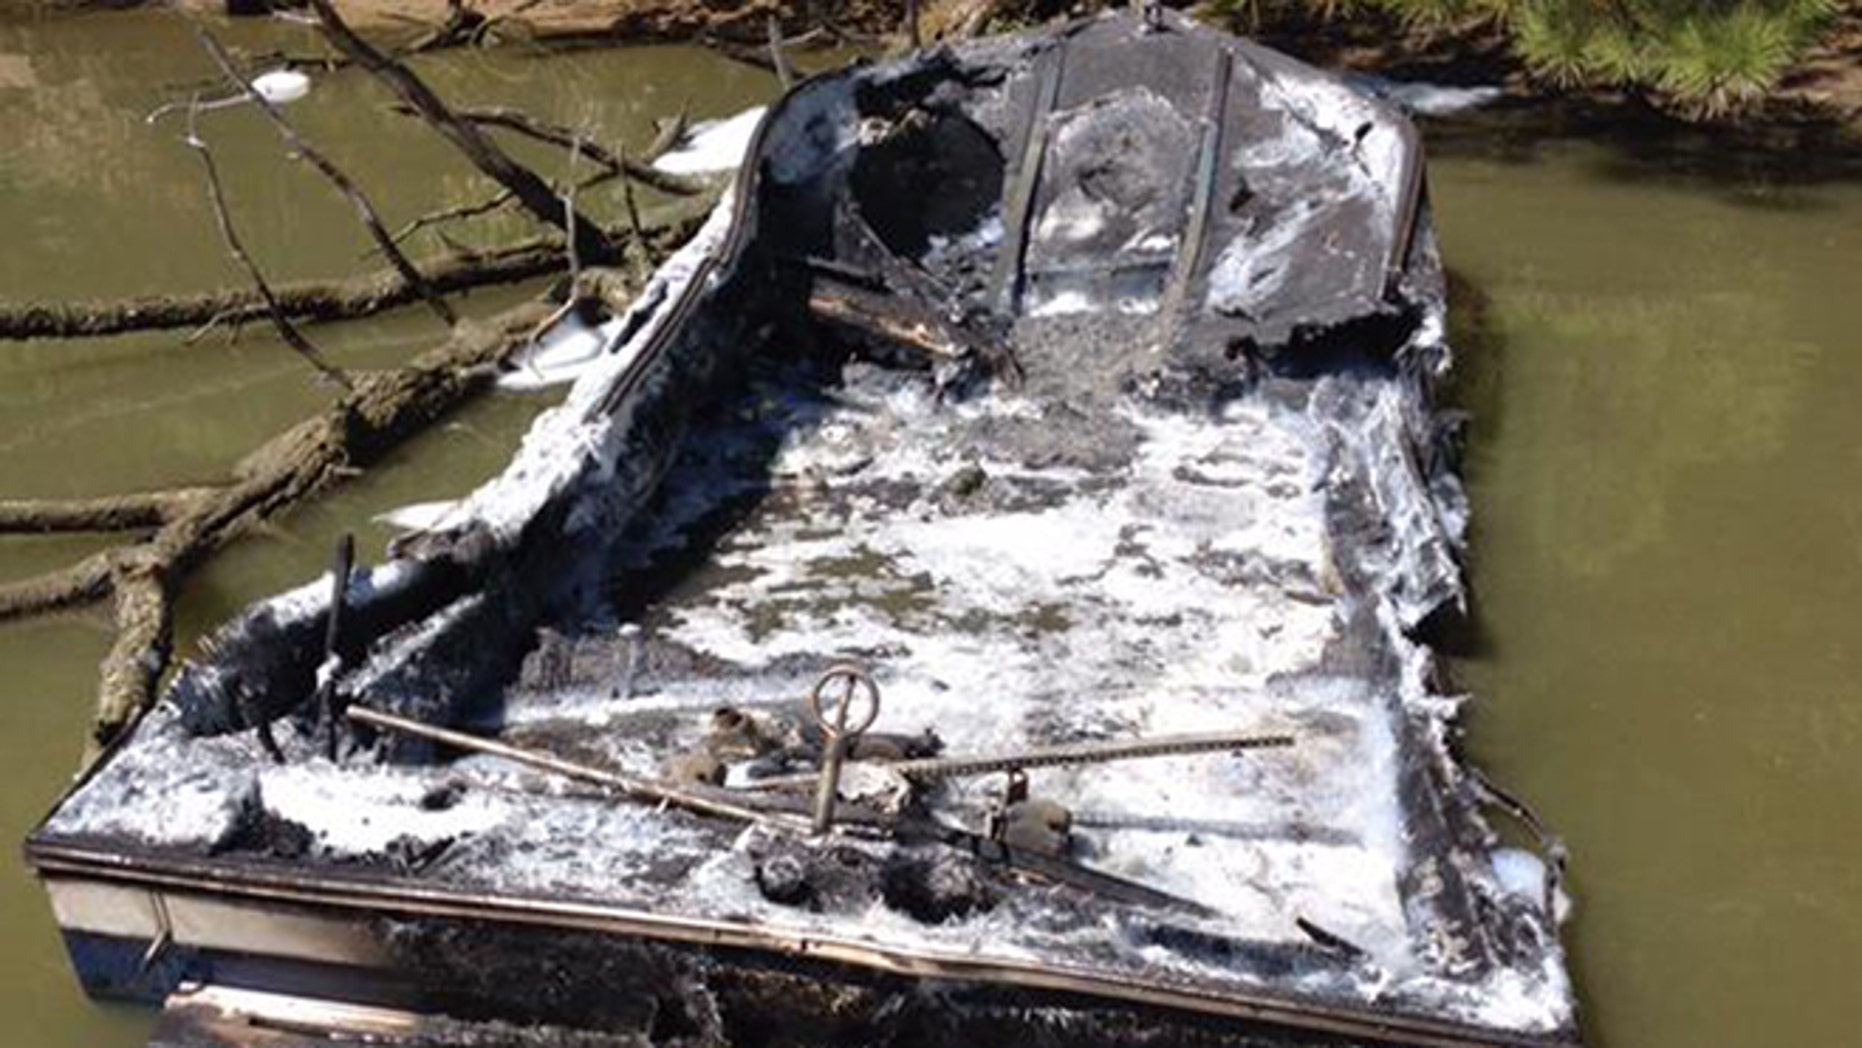 Three children were injured when this boat exploded in Maryland on Saturday, September 19, 2015